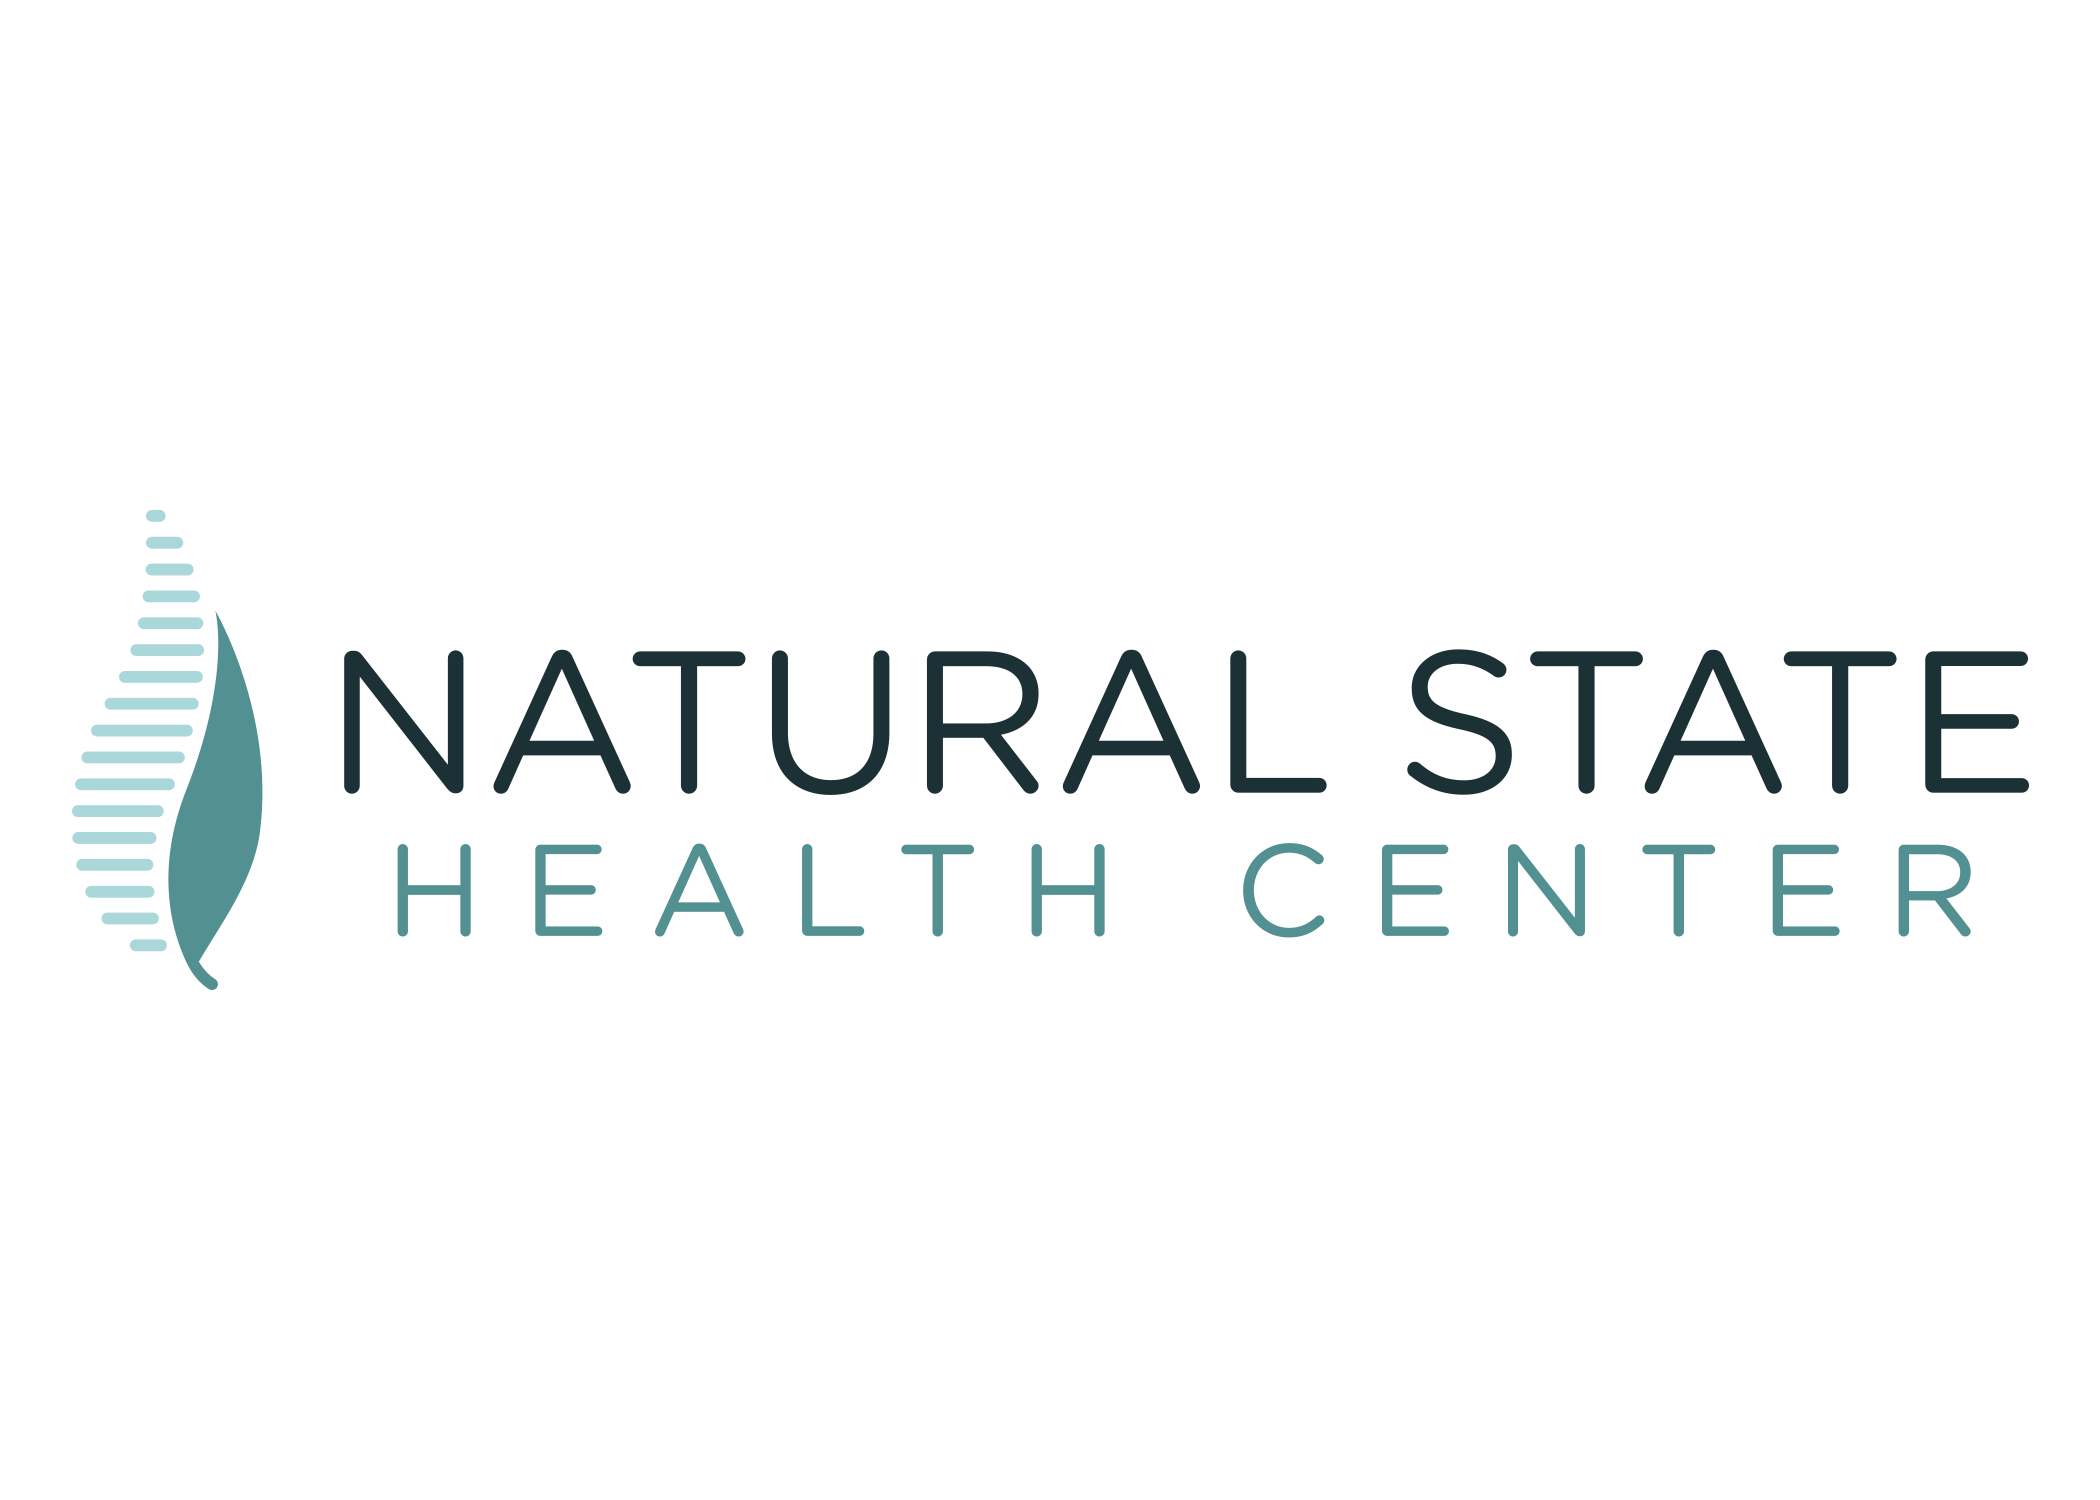 NATURAL STATE HEALTH CENTER and INTEGRATIVE MEDICINE Banner